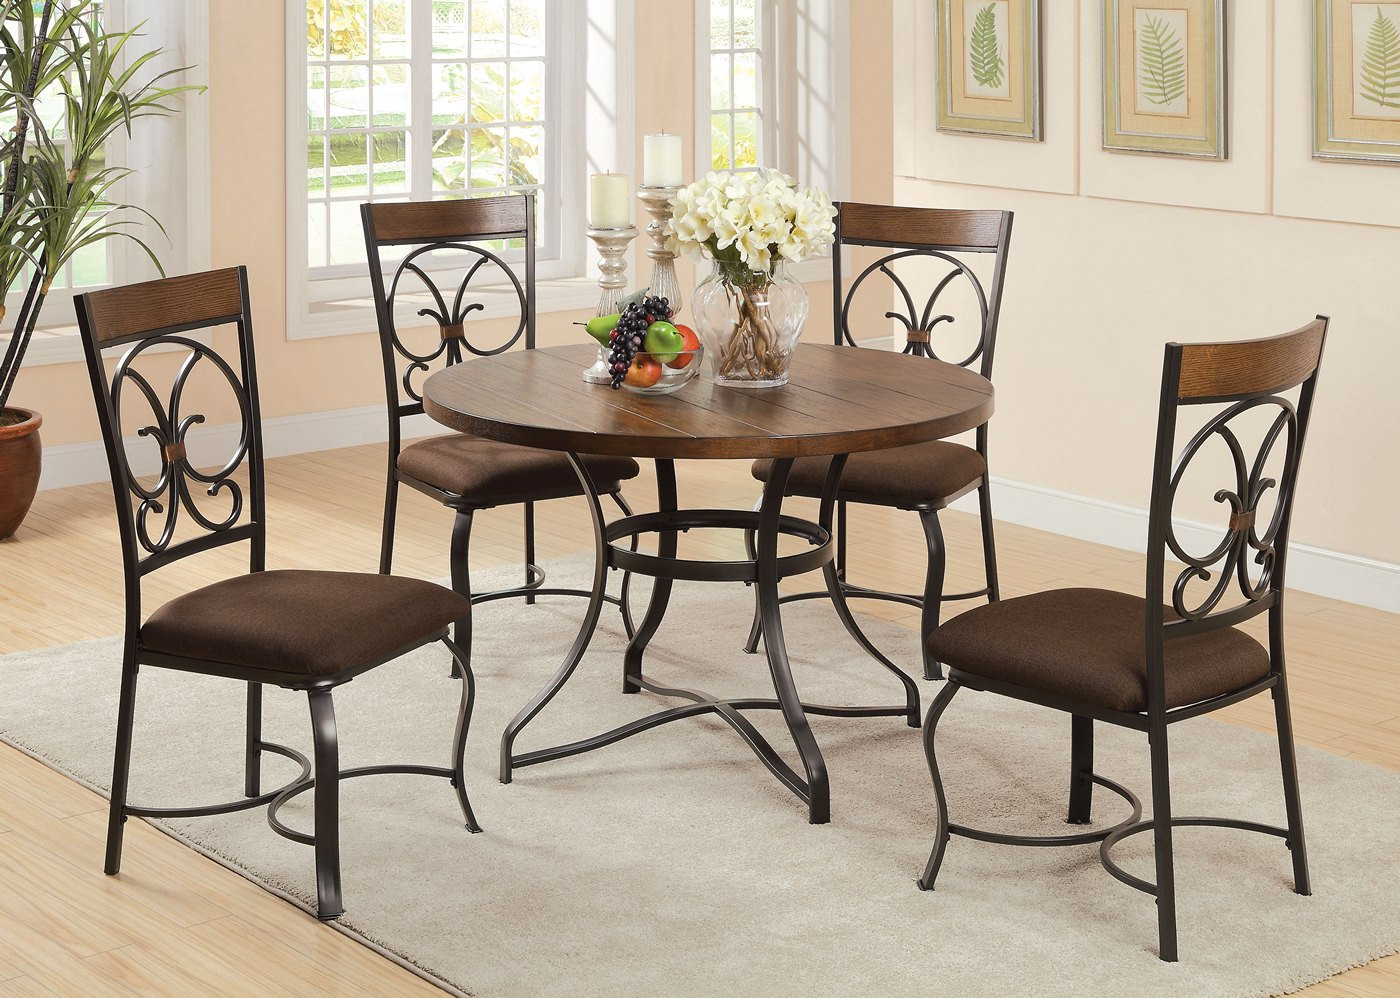 Jiya rustic 44 round dining table w cherry antique for 44 round dining table